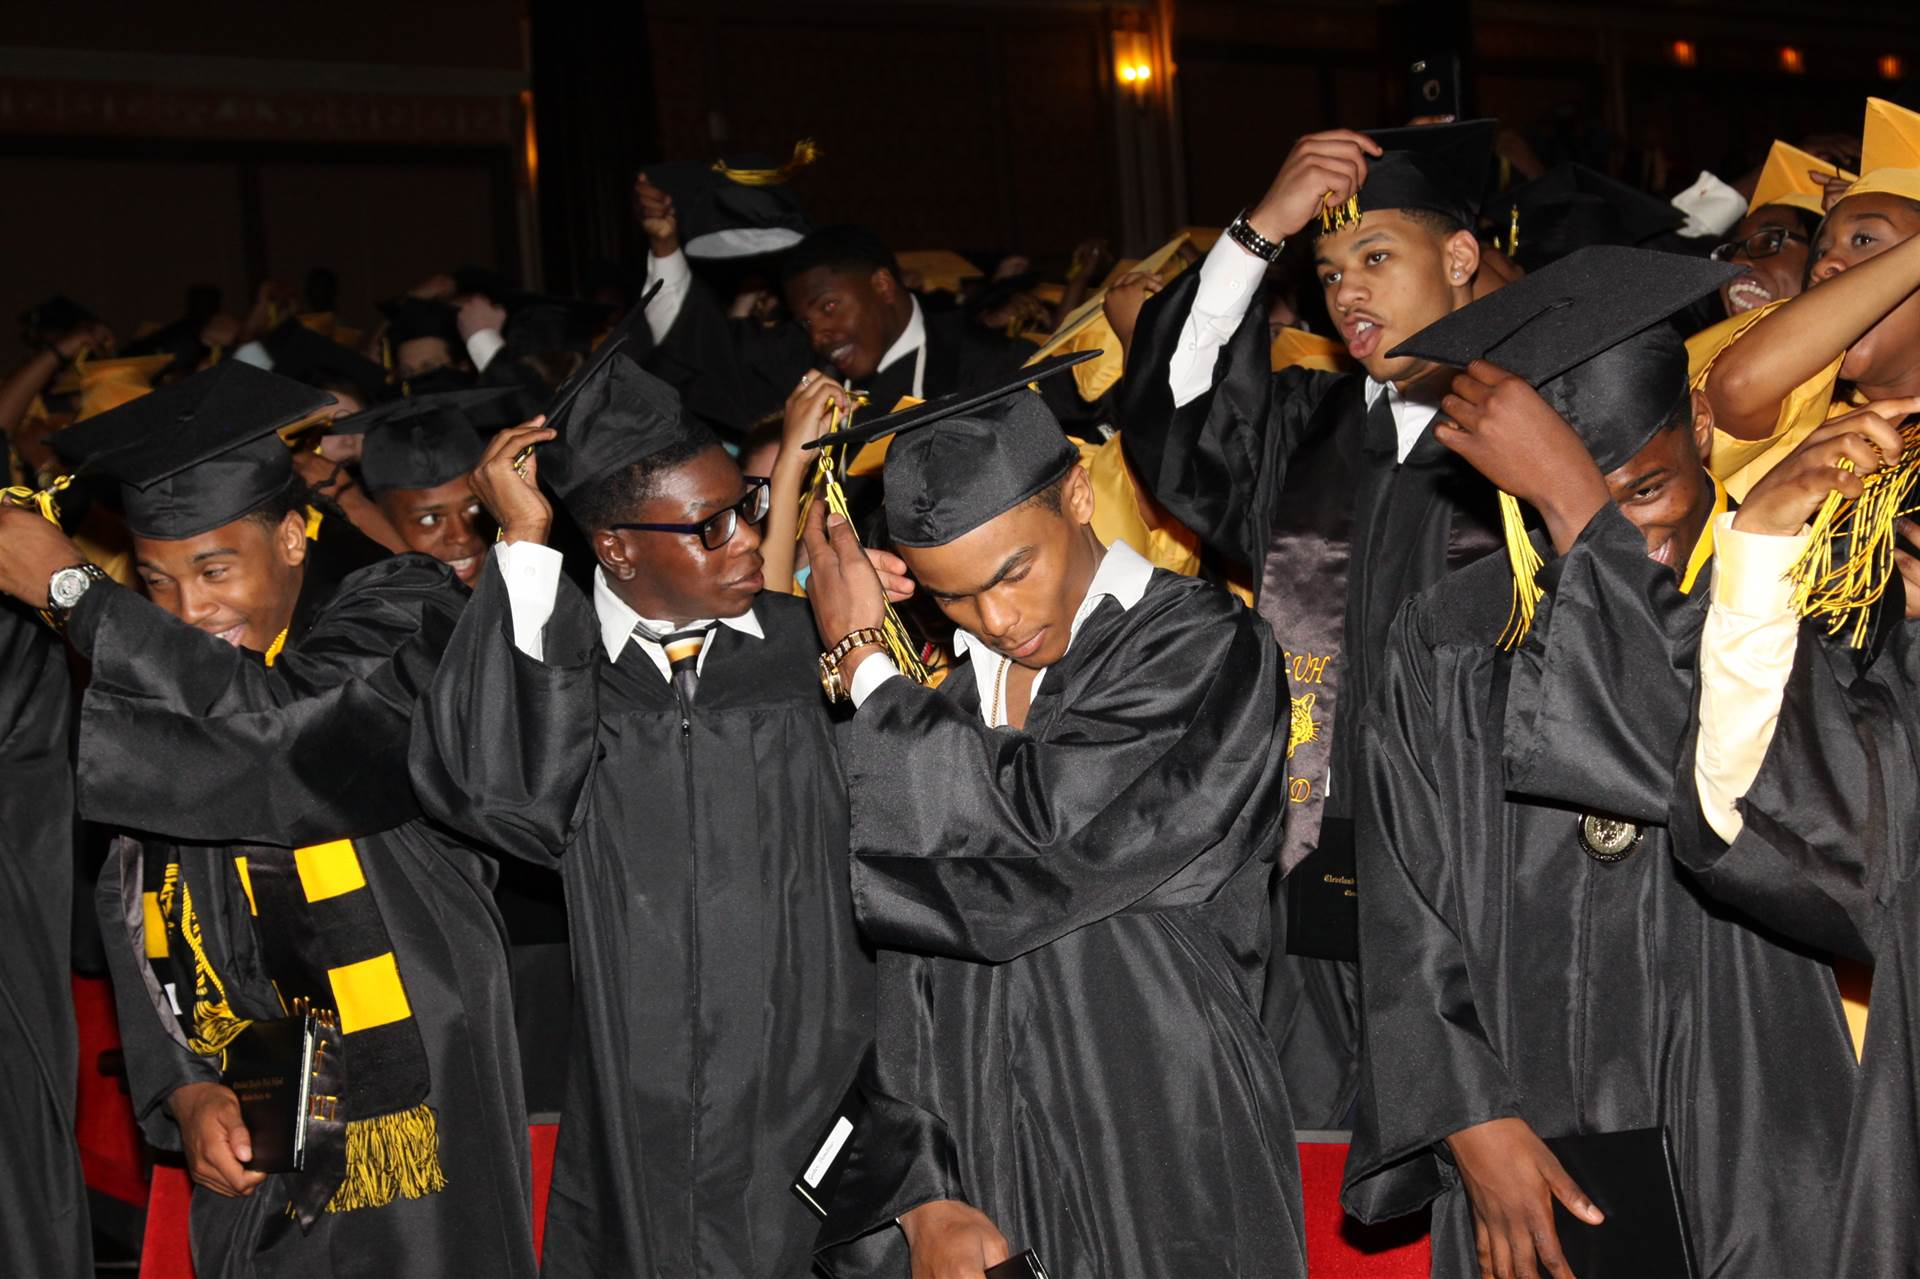 Graduates at the 2017 Heights High commencement